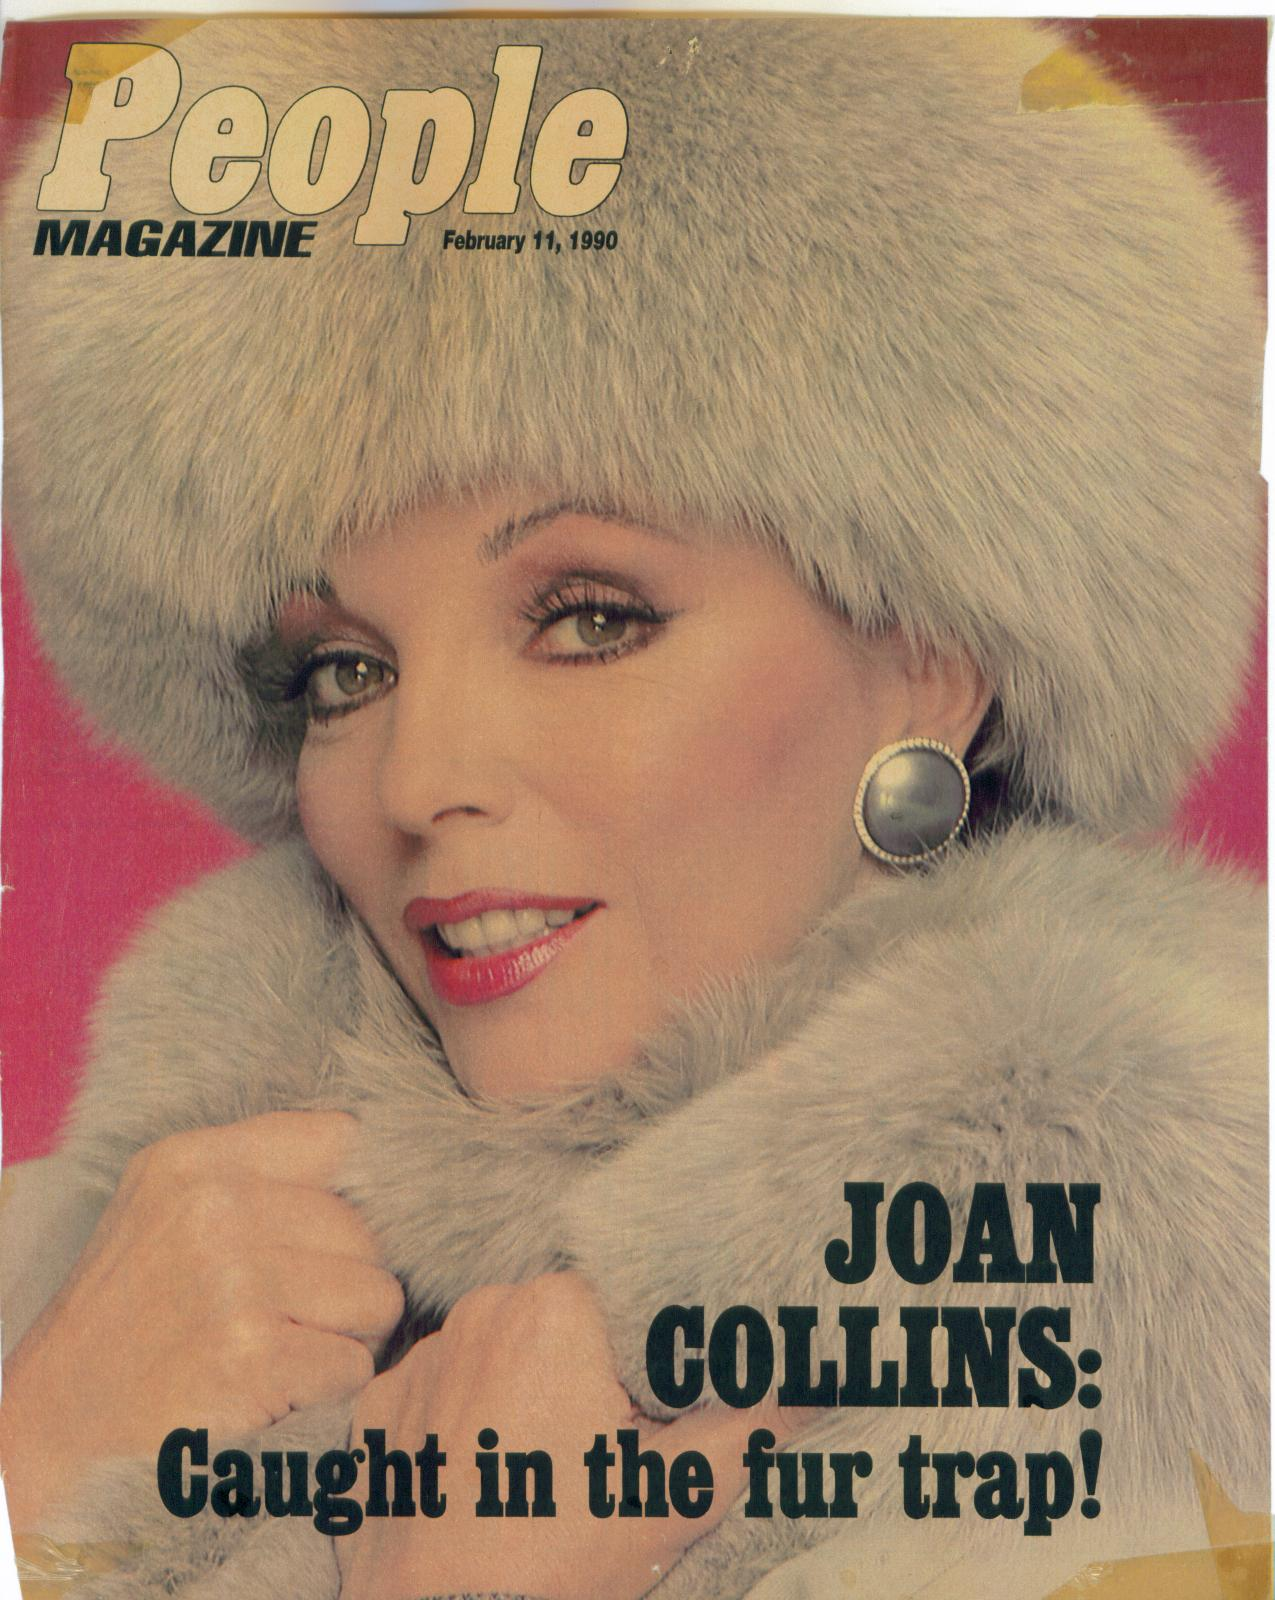 Joan Collins in Dynasty!